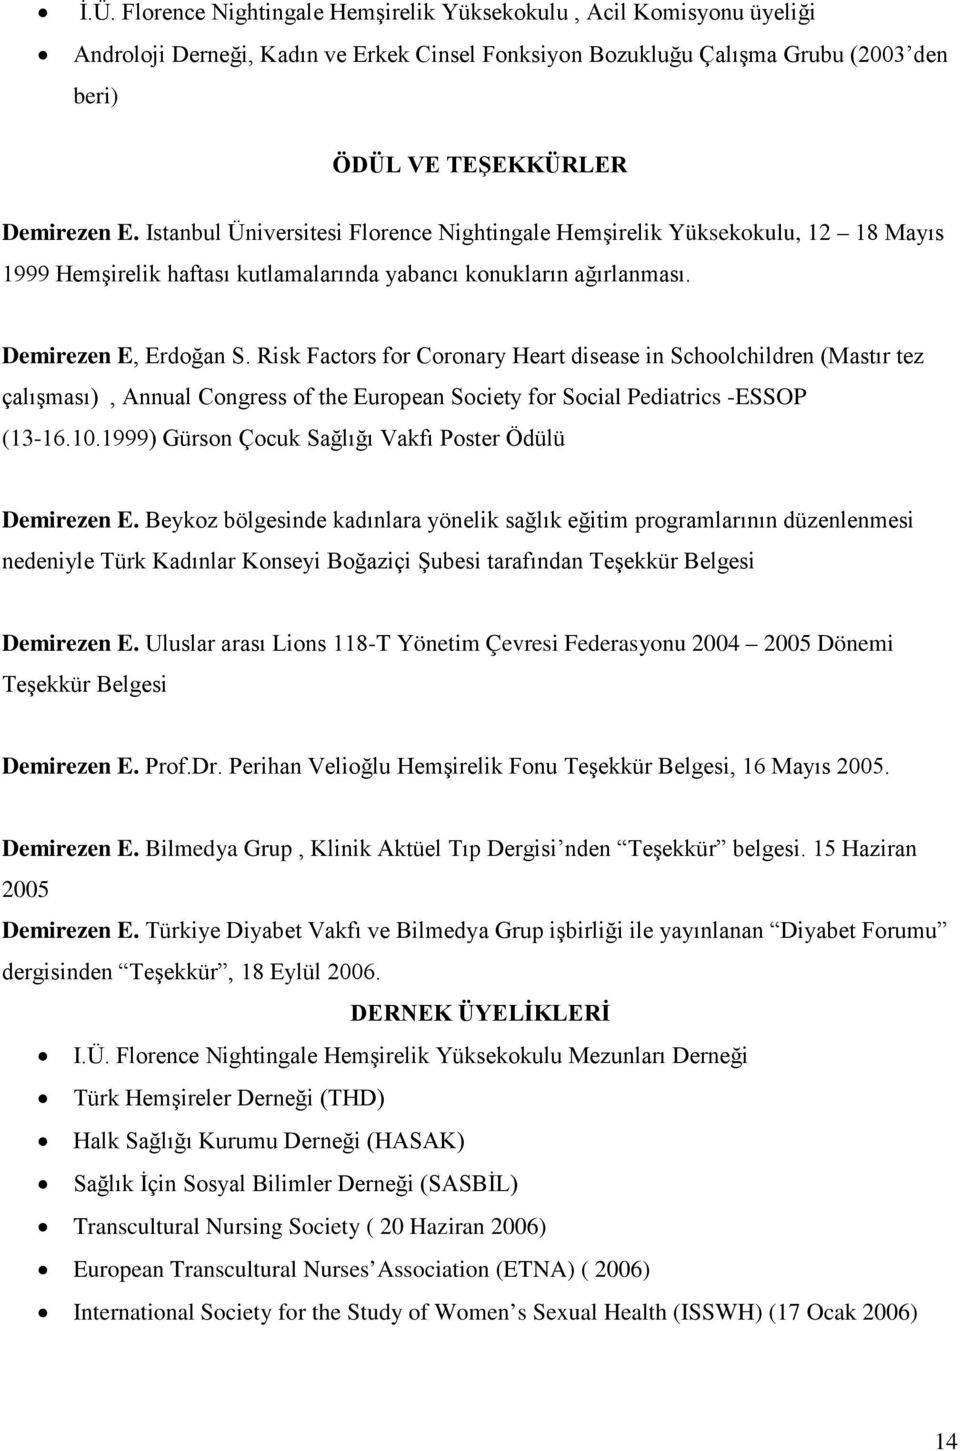 Risk Factors for Coronary Heart disease in Schoolchildren (Mastır tez çalışması), Annual Congress of the European Society for Social Pediatrics -ESSOP (13-16.10.